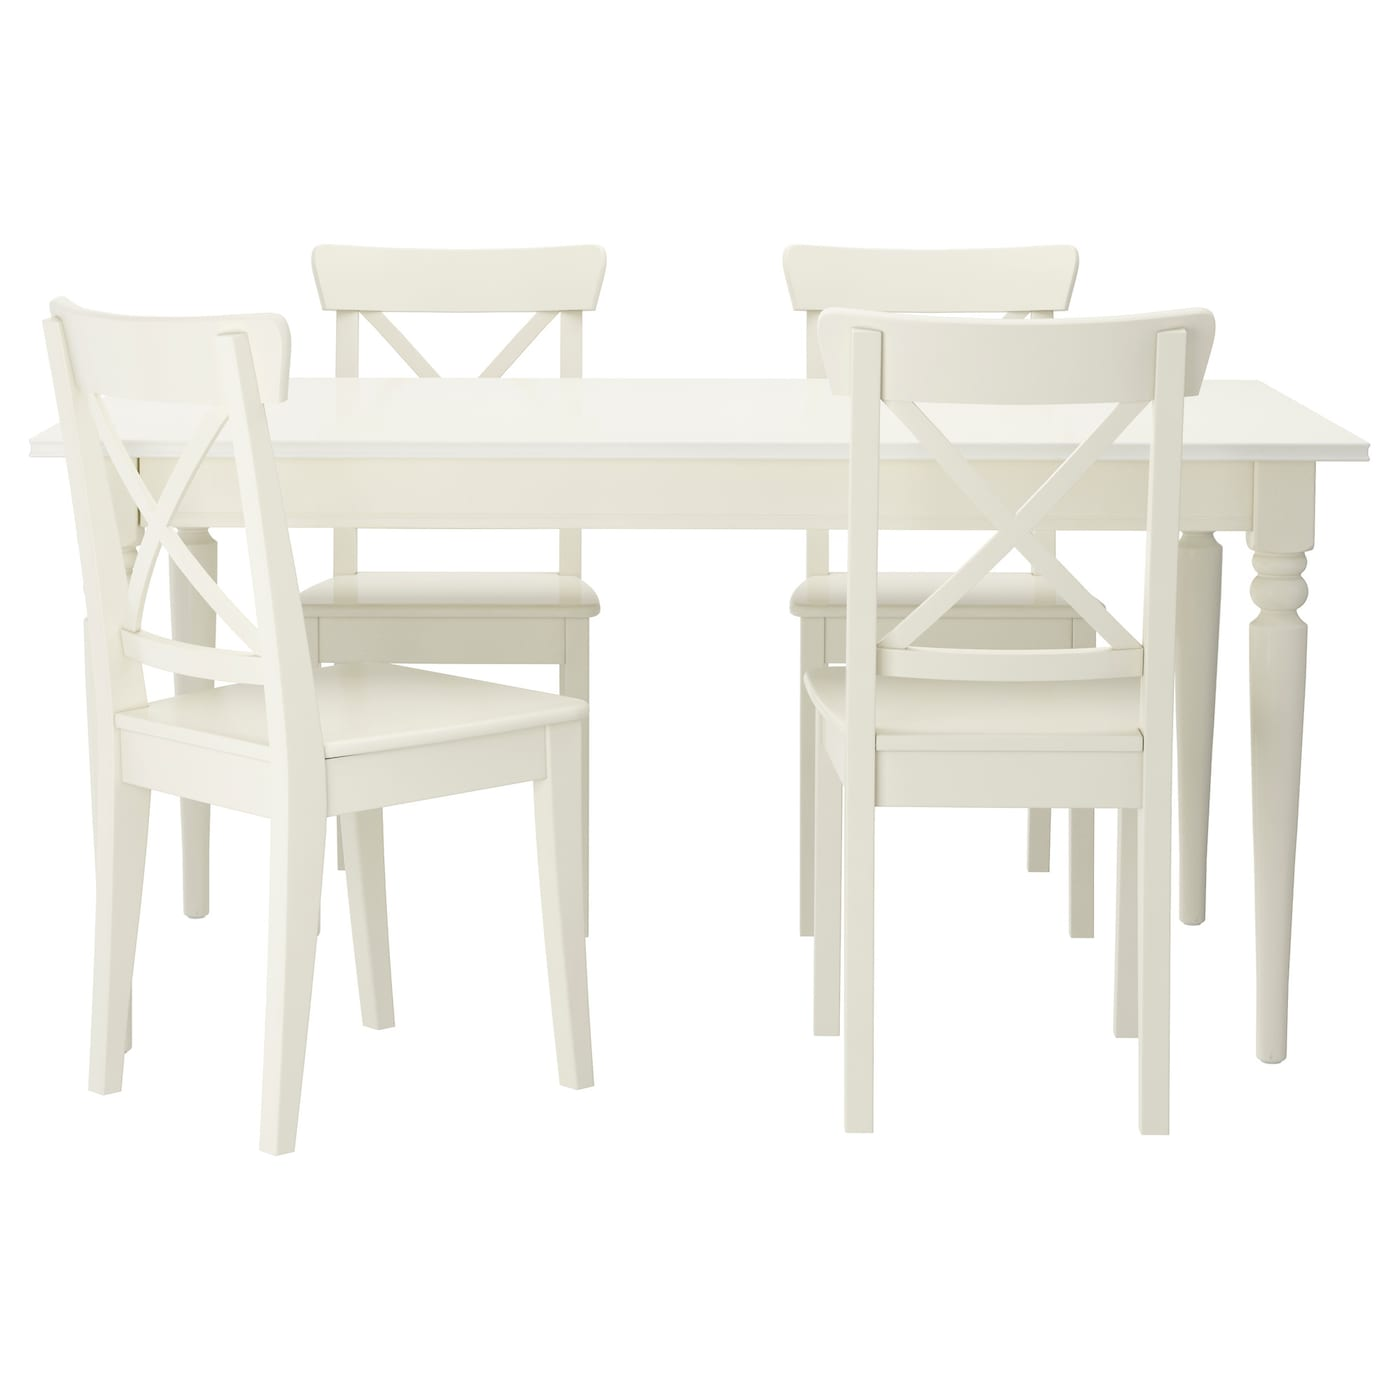 Dining Table Sets amp Dining Room Sets IKEA : ingatorp ingolf table and 4 chairs white0161364pe316138s5 from www.ikea.com size 2000 x 2000 jpeg 166kB